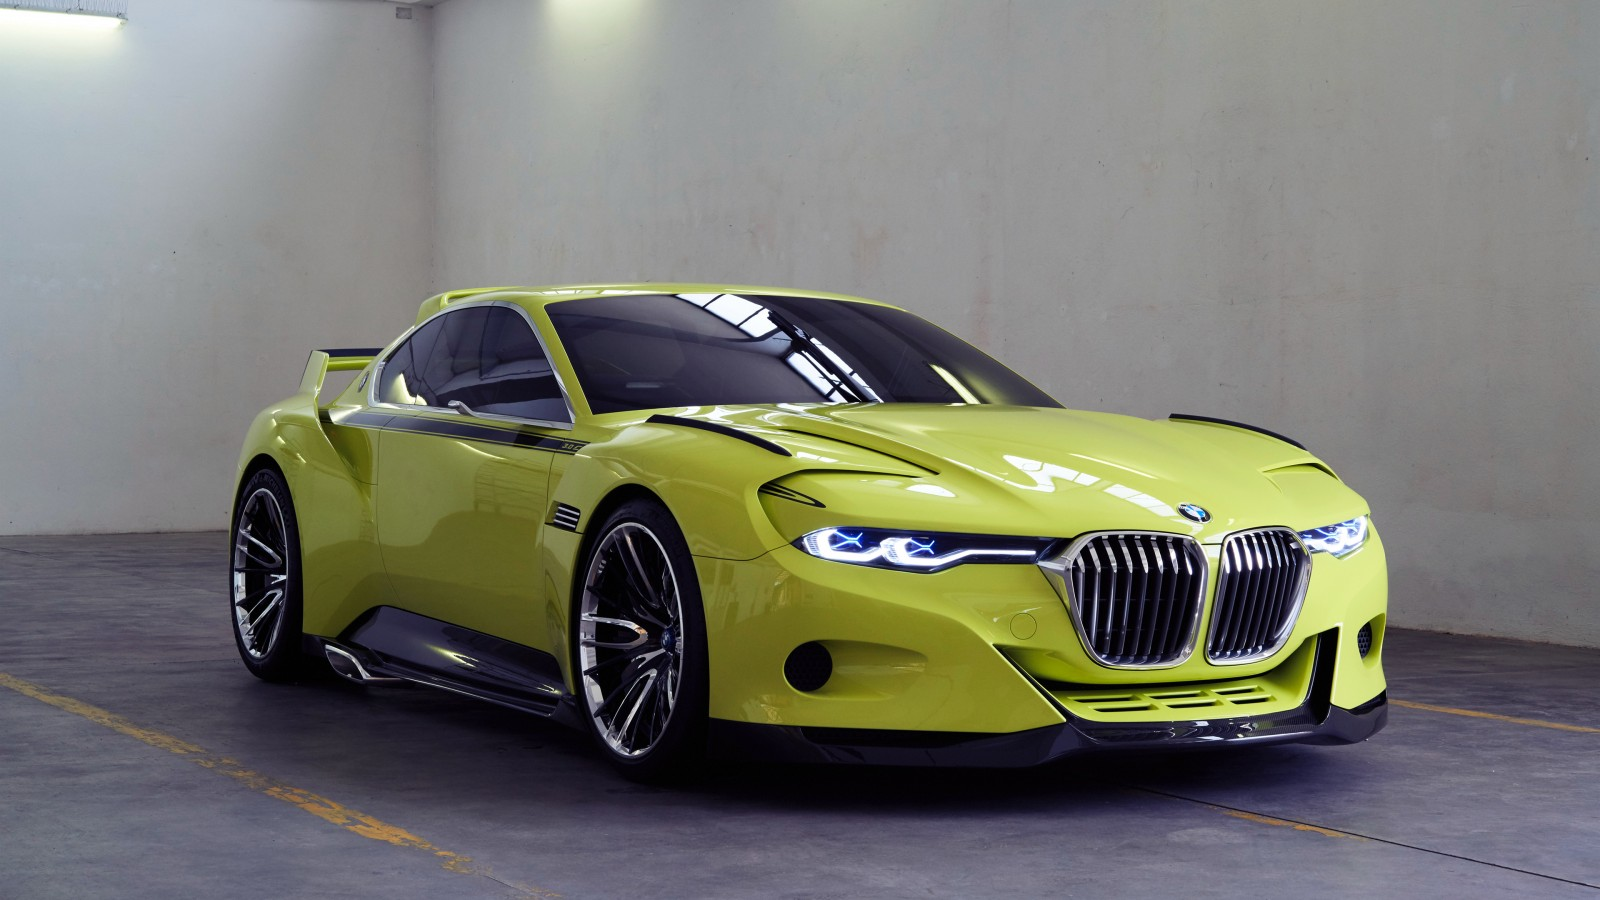 BMW CSL Hommage 2015 Wallpaper | HD Car Wallpapers | ID #5858